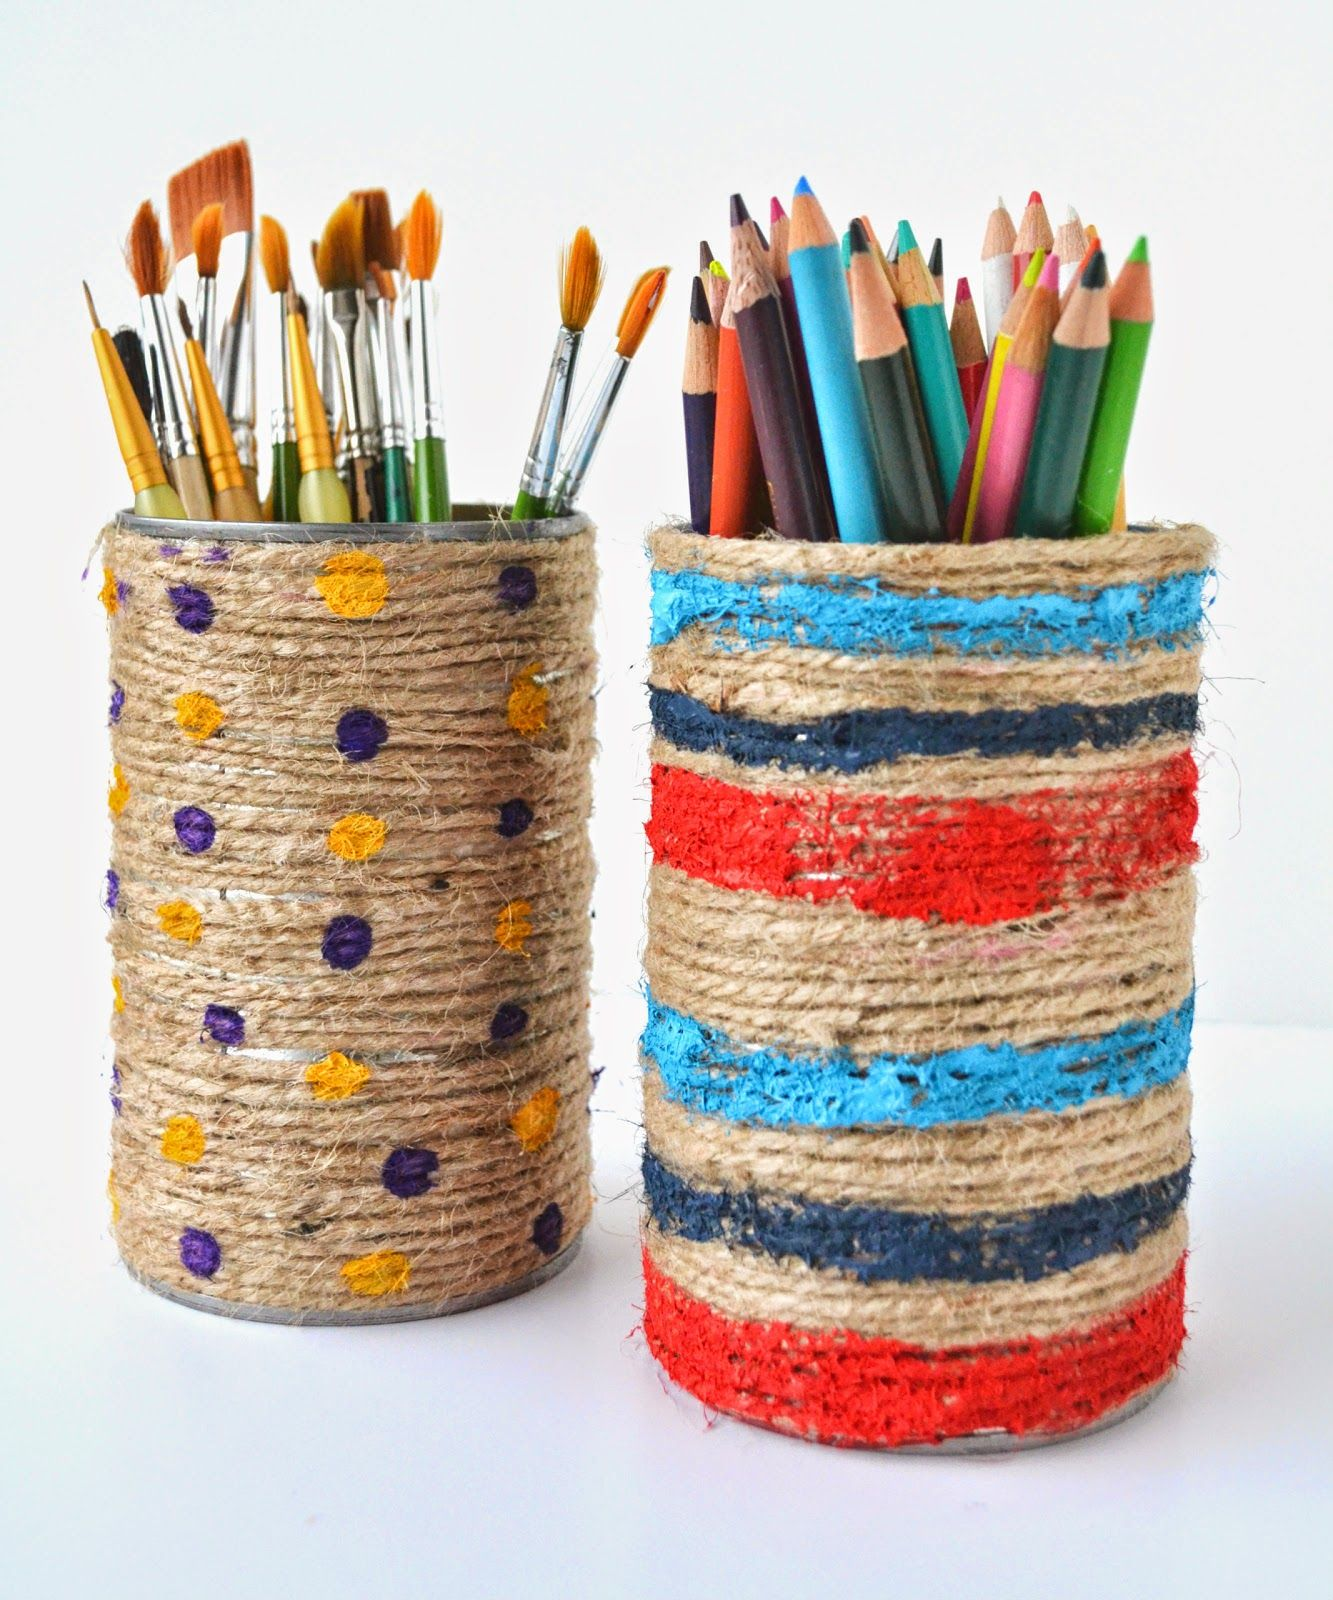 Untrendy Life: DIY Jute Rope Wrapped And Painted Cans